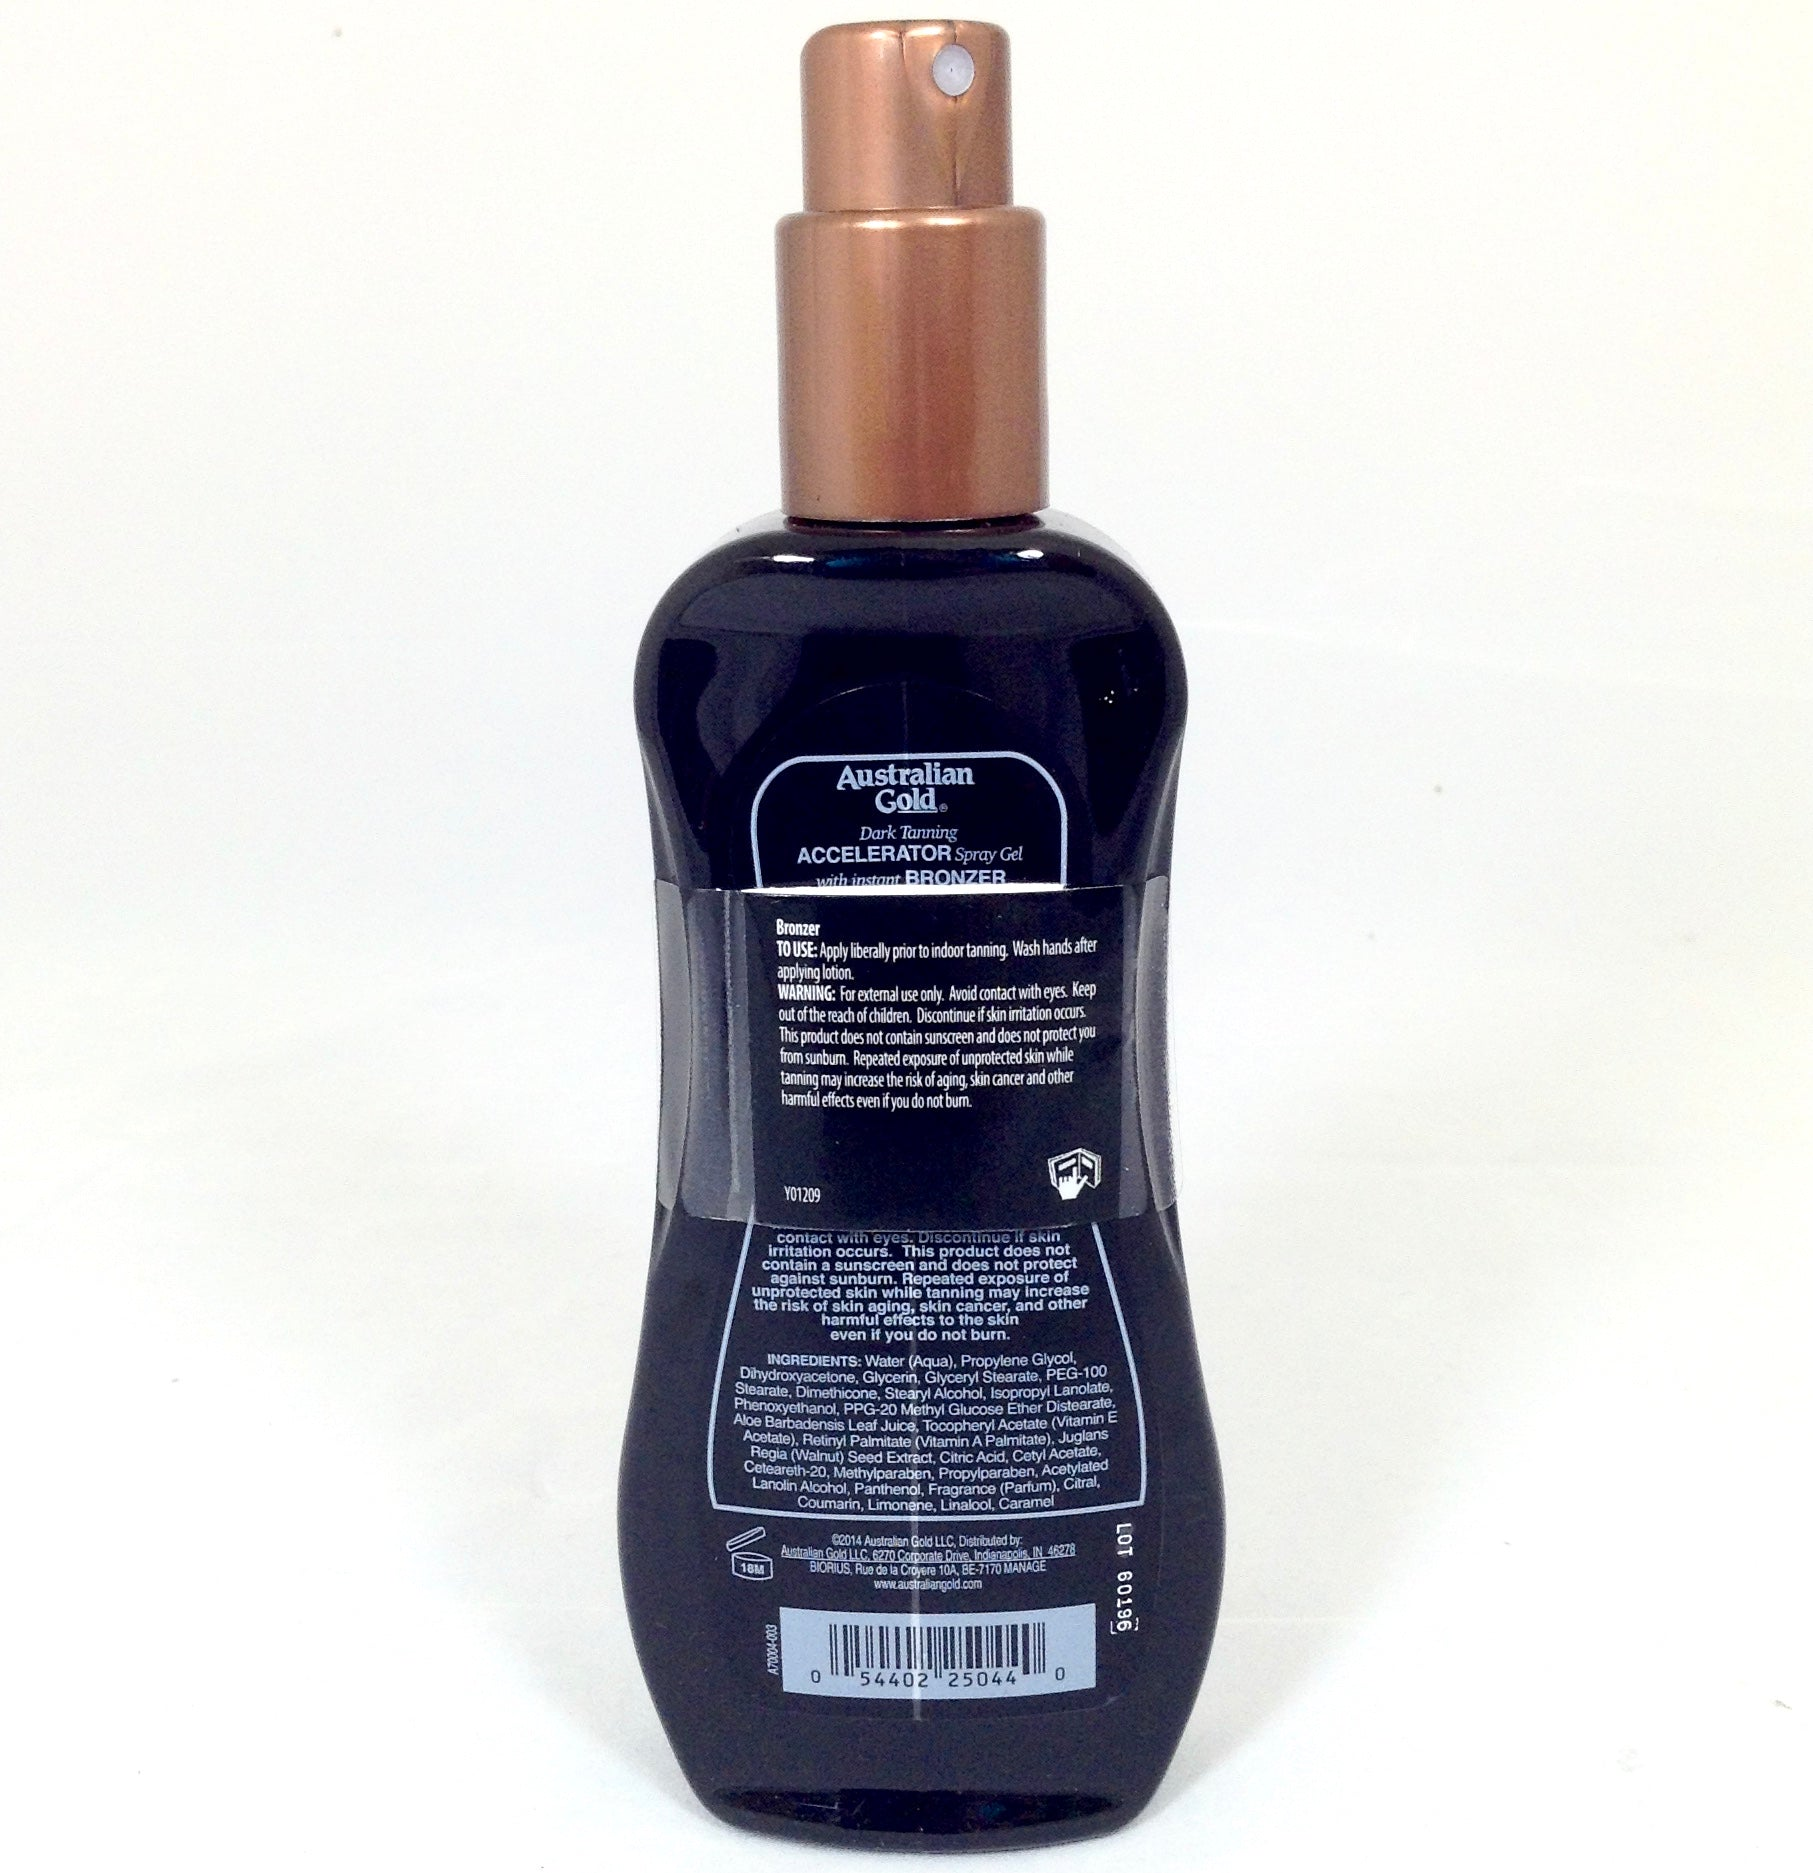 Dark Tanning Accelerator Spray Gel with Bronzer